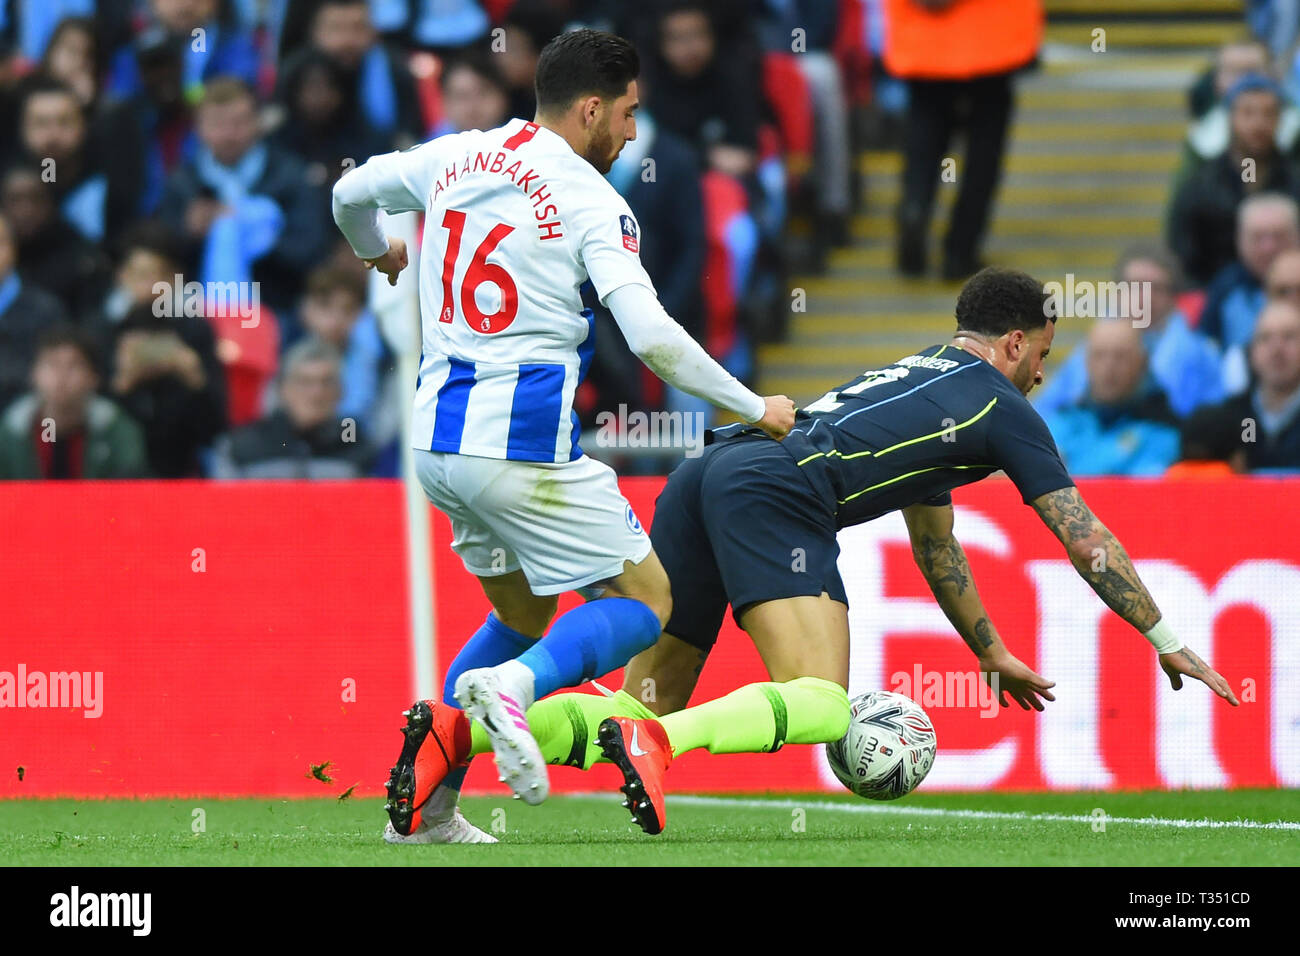 London, UK. 6th Apr, 2019. the push by Brighton forward Alireza Jahanbakhsh that leads to two yellow cards during the FA Cup Semi Final between Brighton and Hove Albion and Manchester City at Wembley Stadium, London on Saturday 6th April 2019. (Credit: Jon Bromley | MI News) Editorial use only, license required for commercial use. No use in betting, games or a single club/league/player publications. Photograph may only be used for newspaper and/or magazine editorial purposes. Credit: MI News & Sport /Alamy Live News Stock Photo